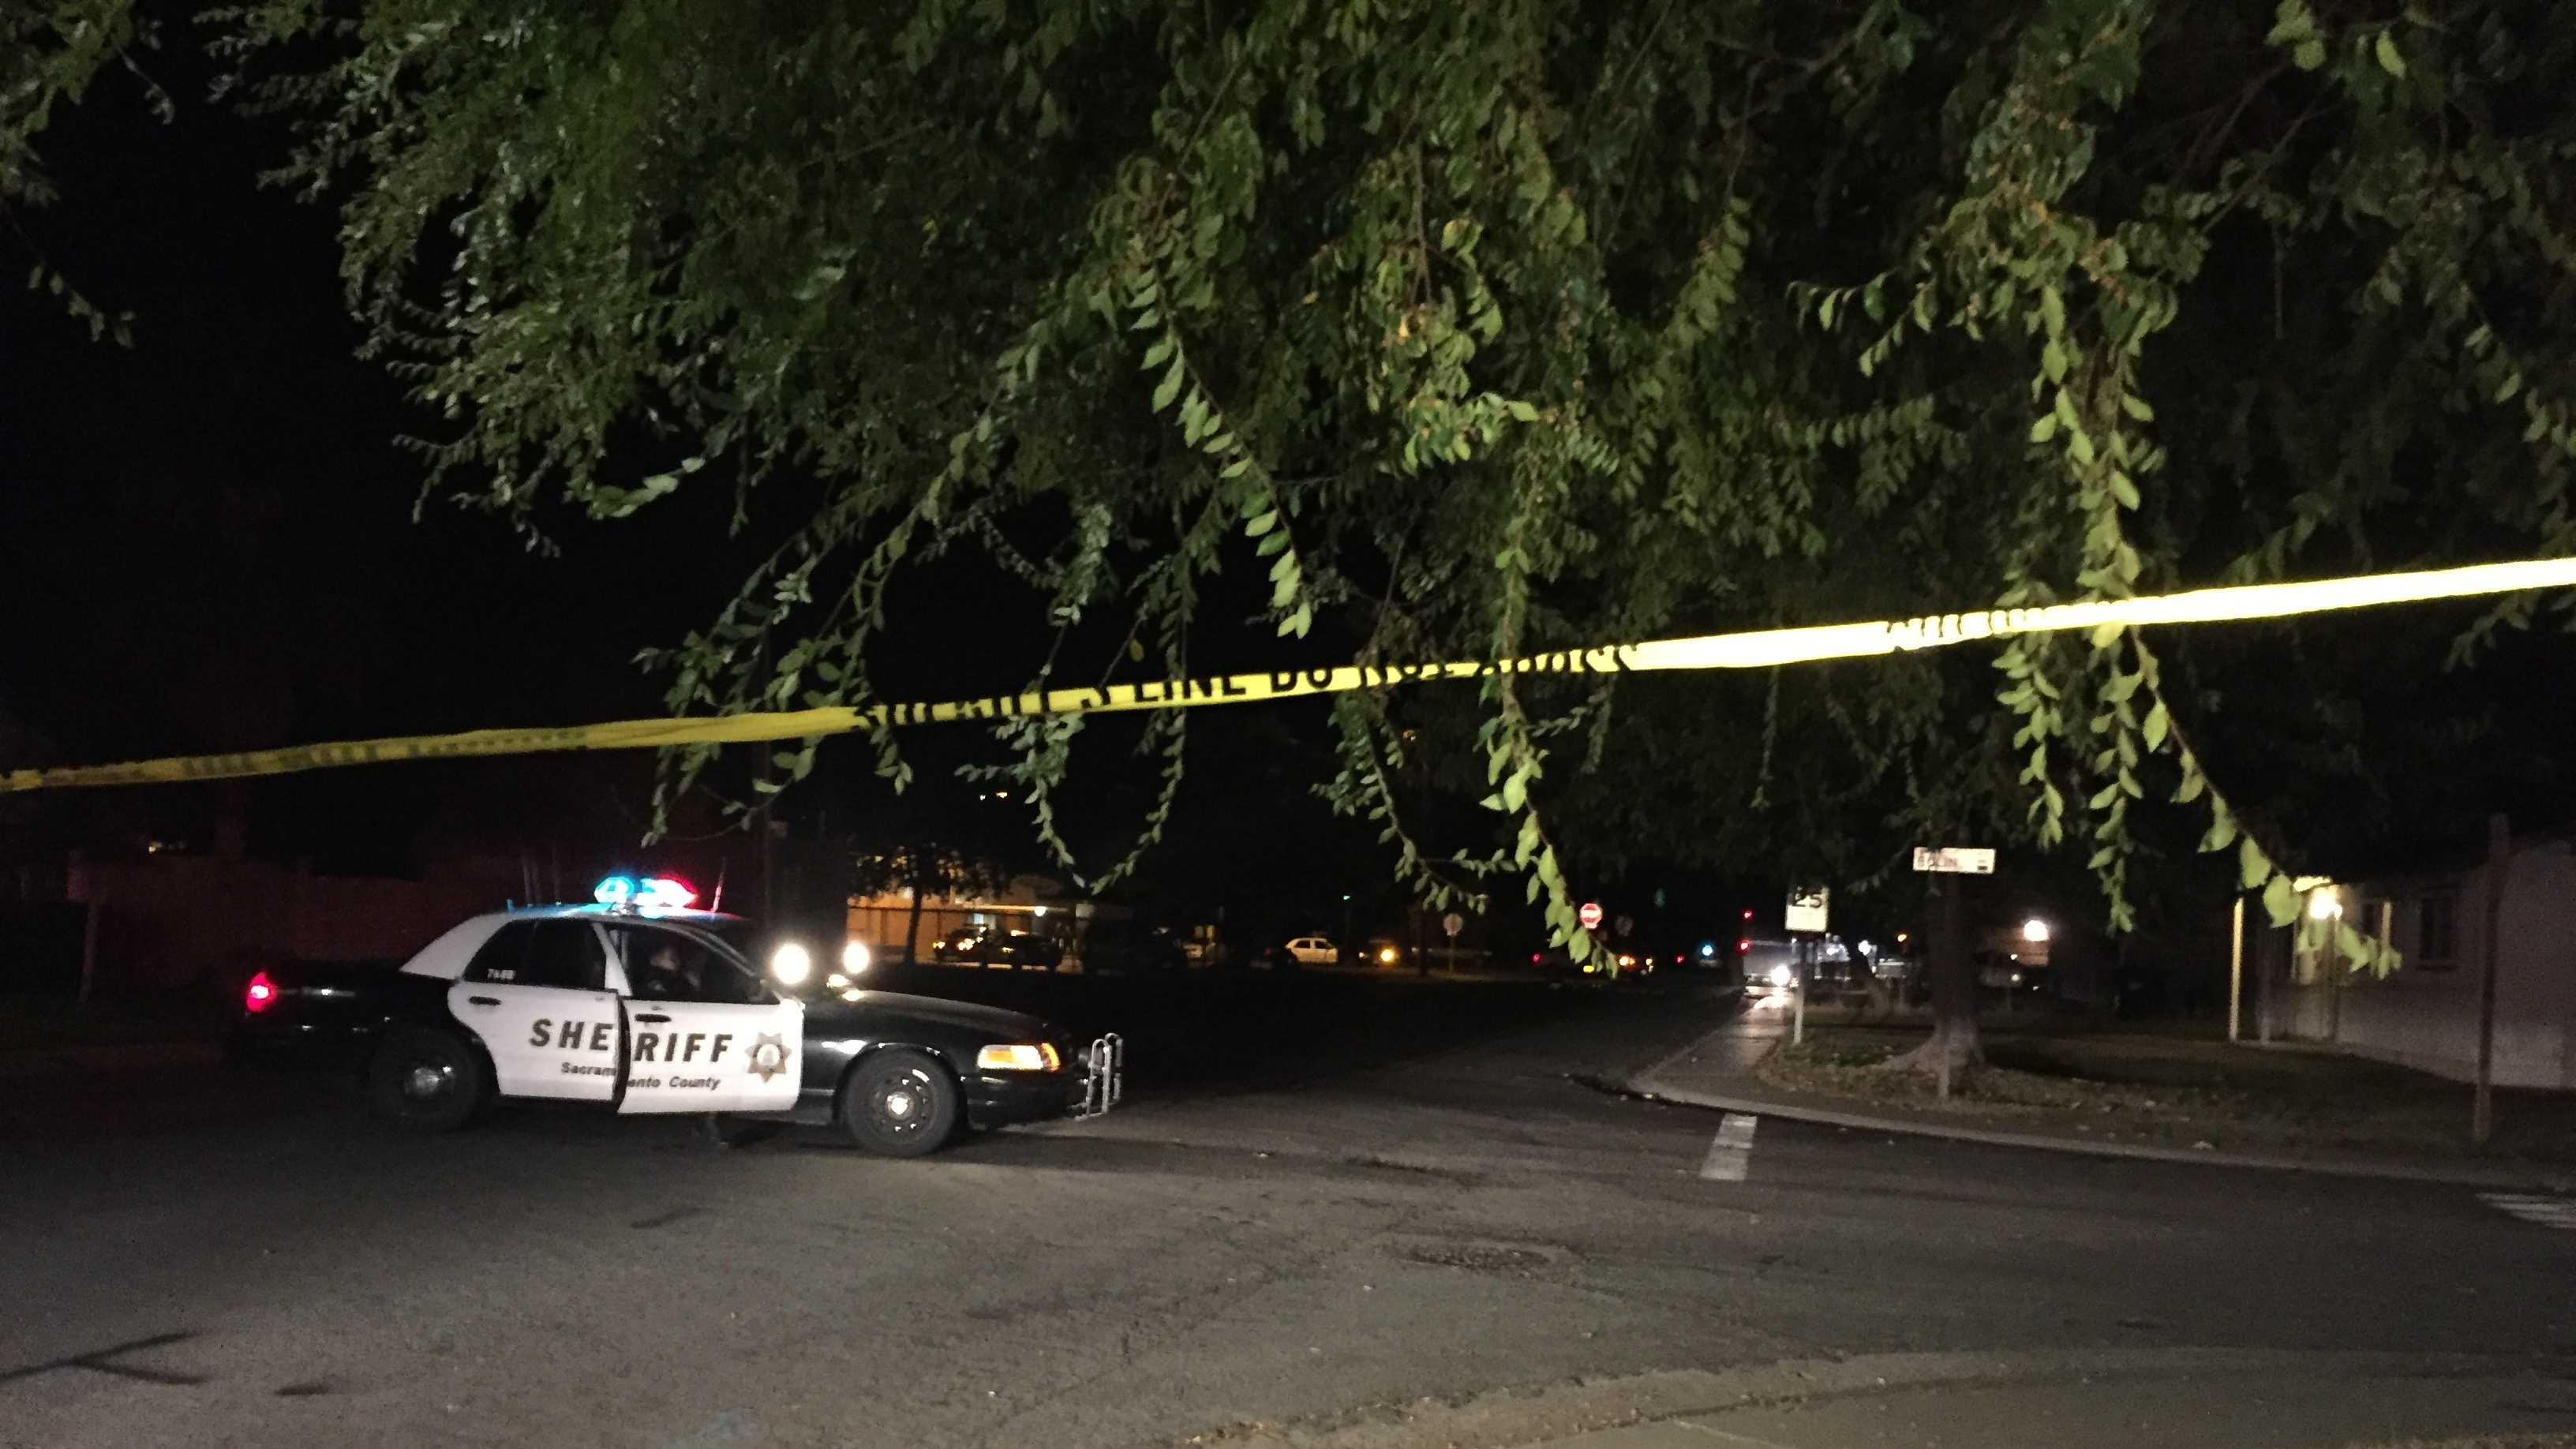 Sacramento County sheriff's deputies search for a man who shot at a father and son in a Rio Linda neighborhood on Thursday, Nov. 12, 2015.